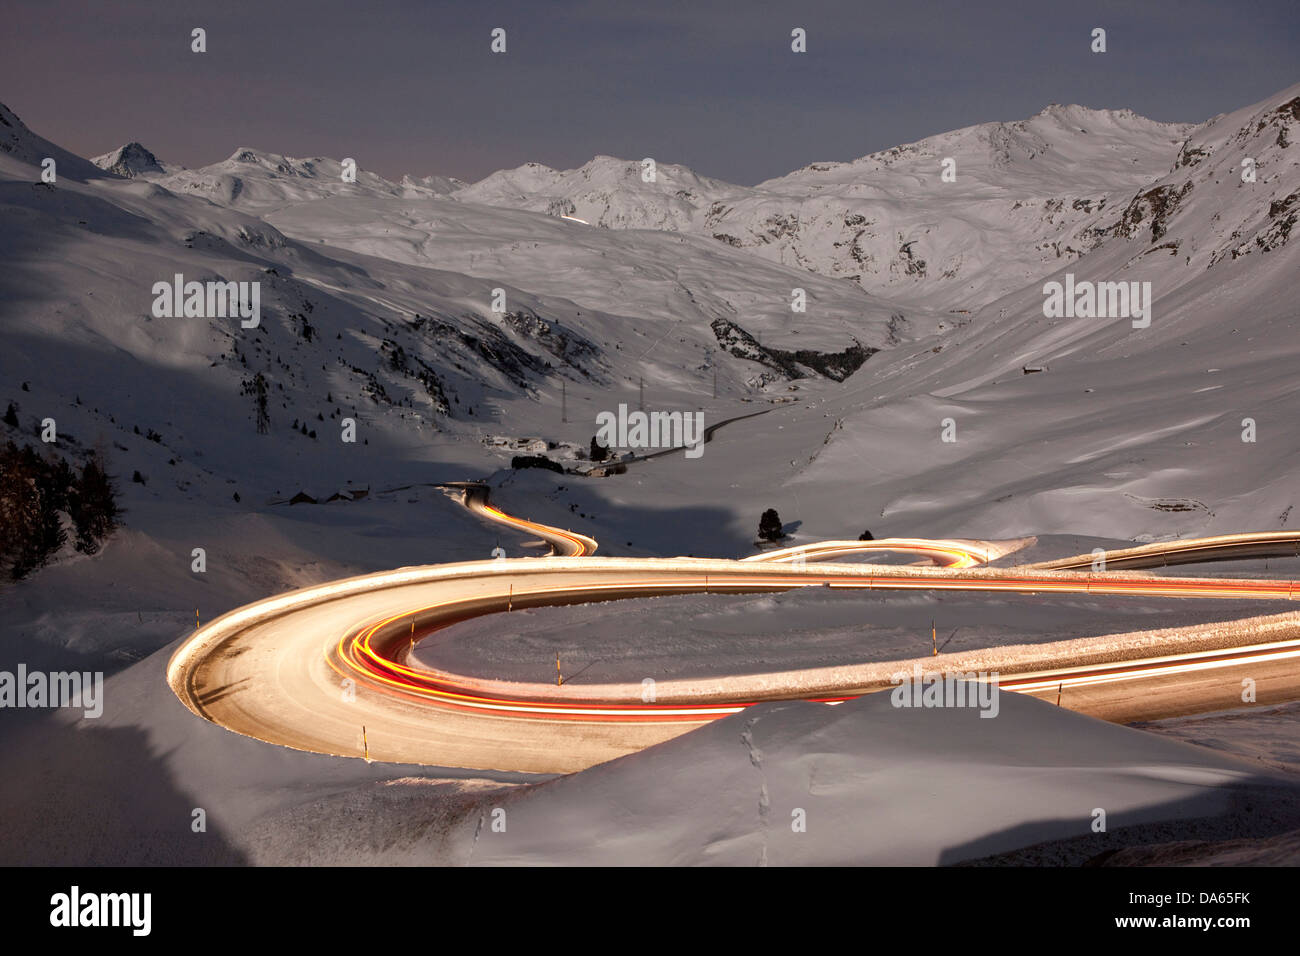 Julier, mountain pass, Pass, street, night, dark, traffic, transport, canton, GR, Graubünden, Grisons, Switzerland, - Stock Image